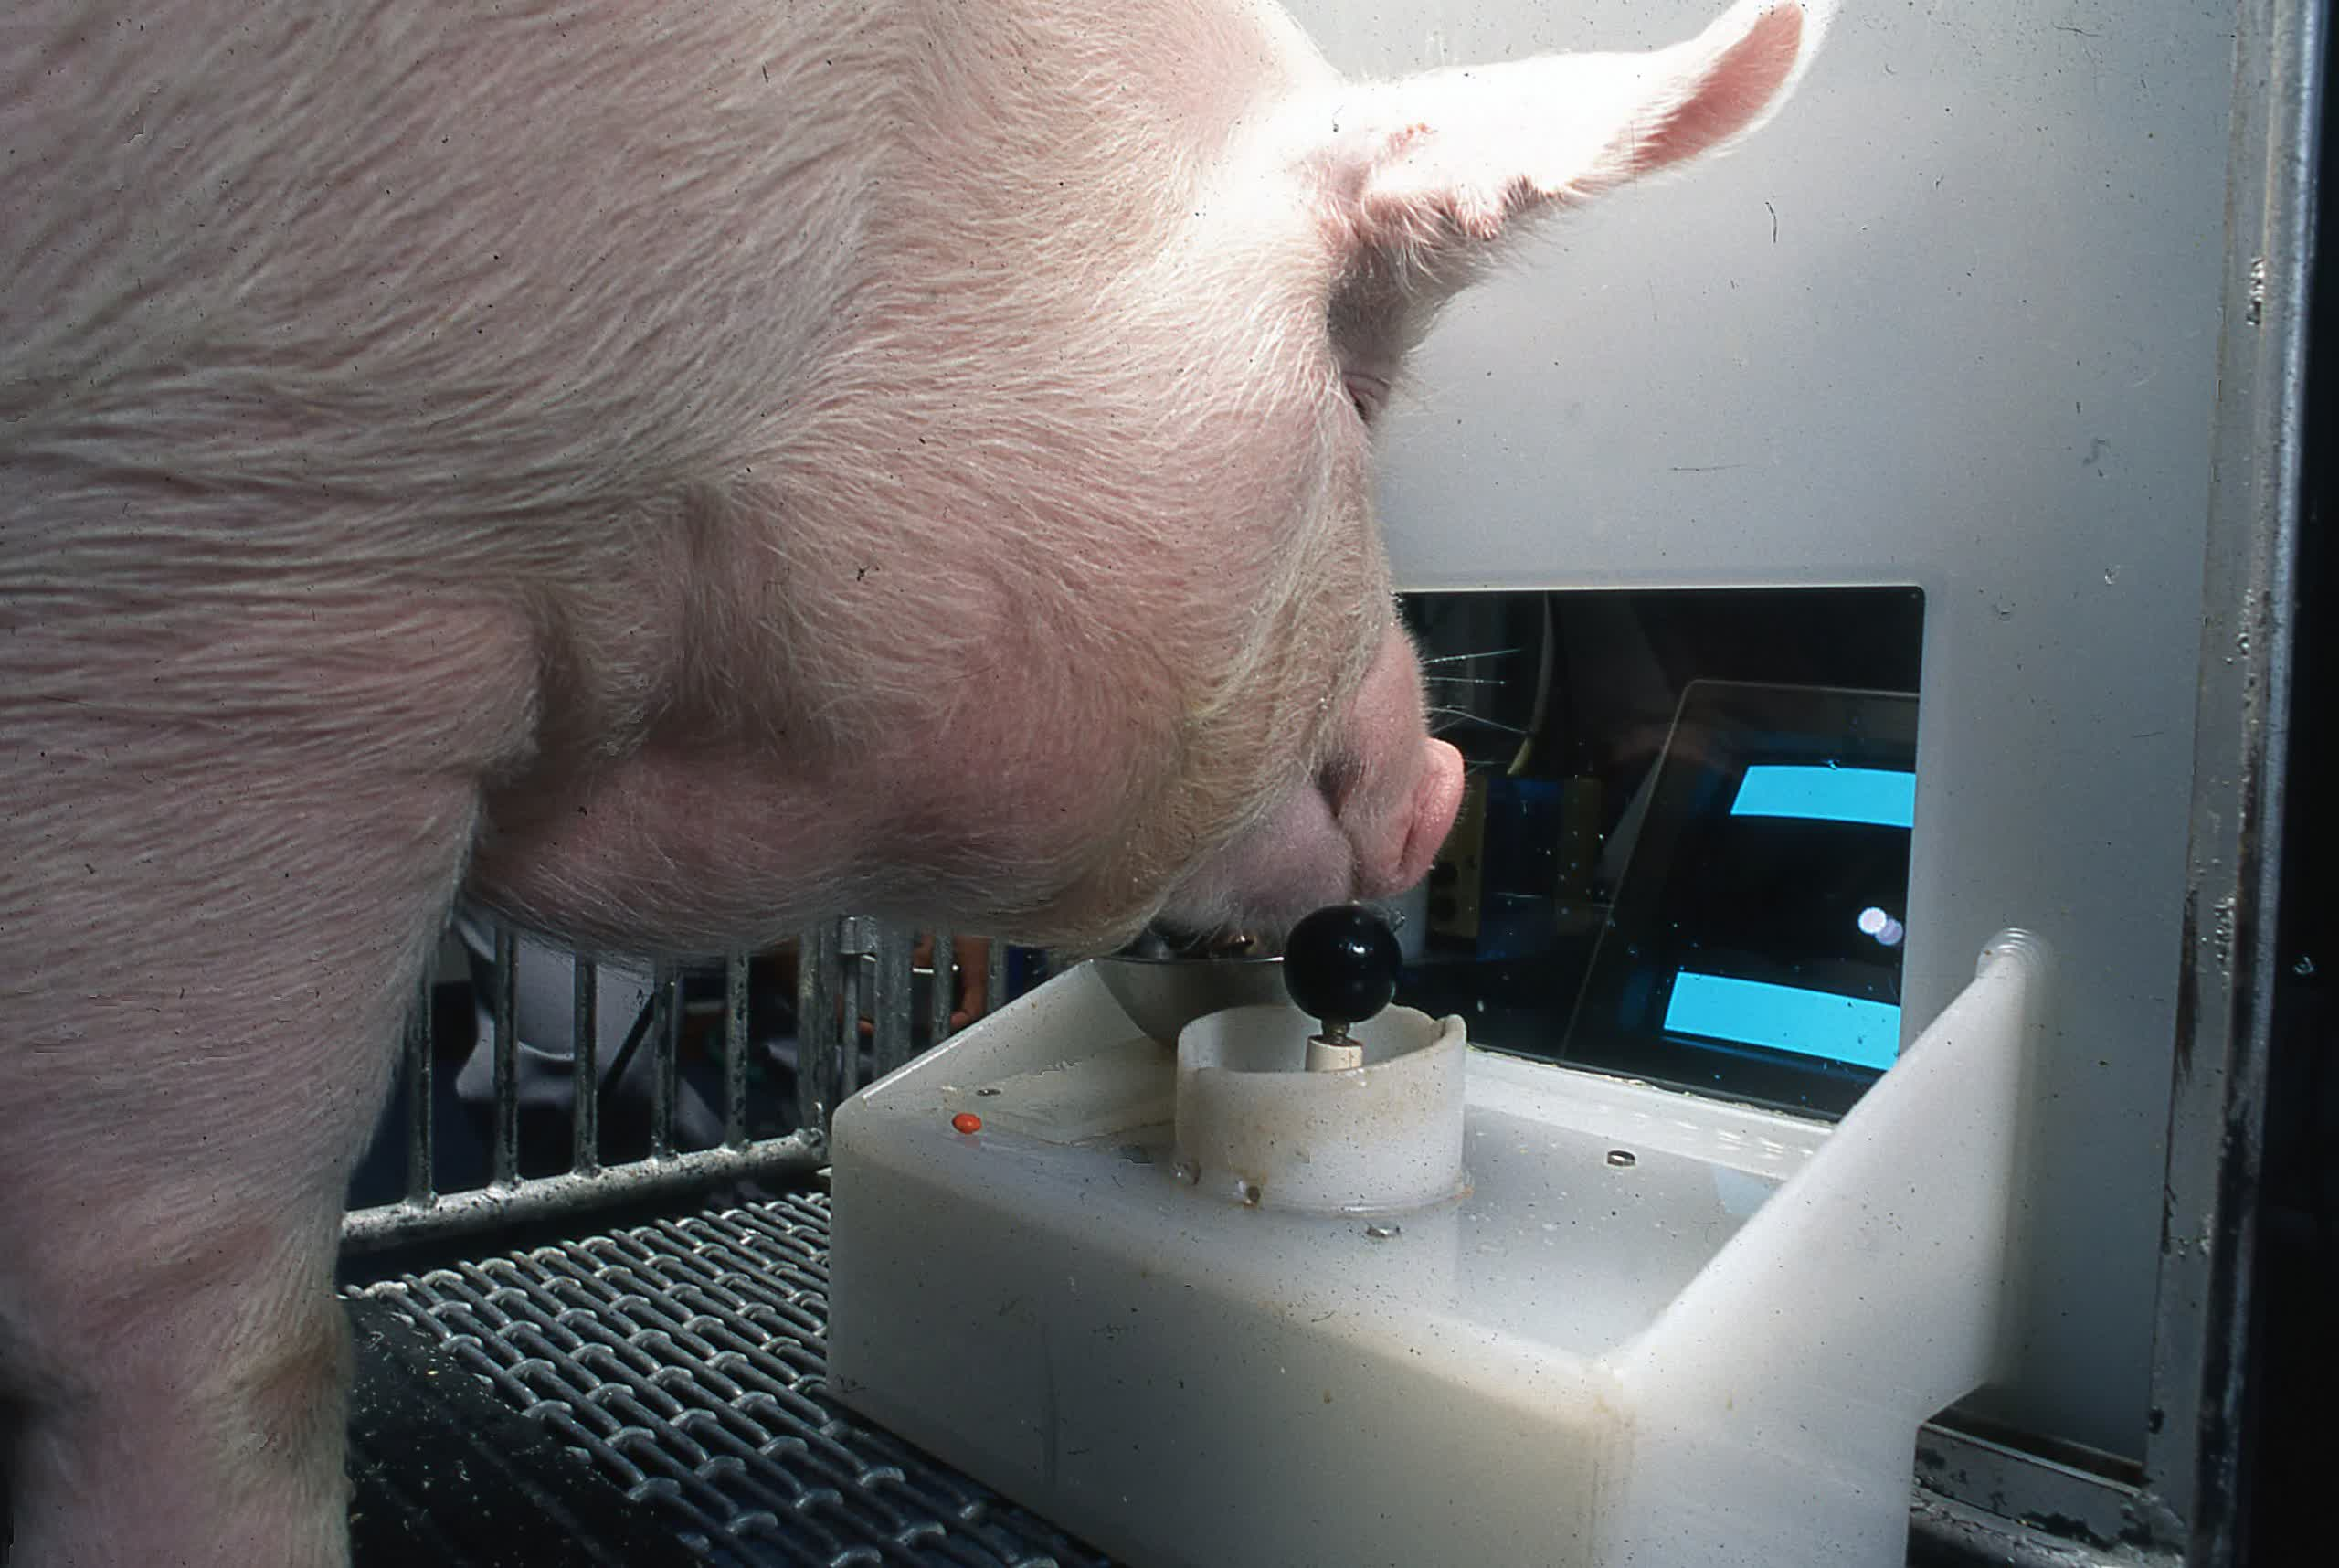 Study shows pigs can be trained to play video games